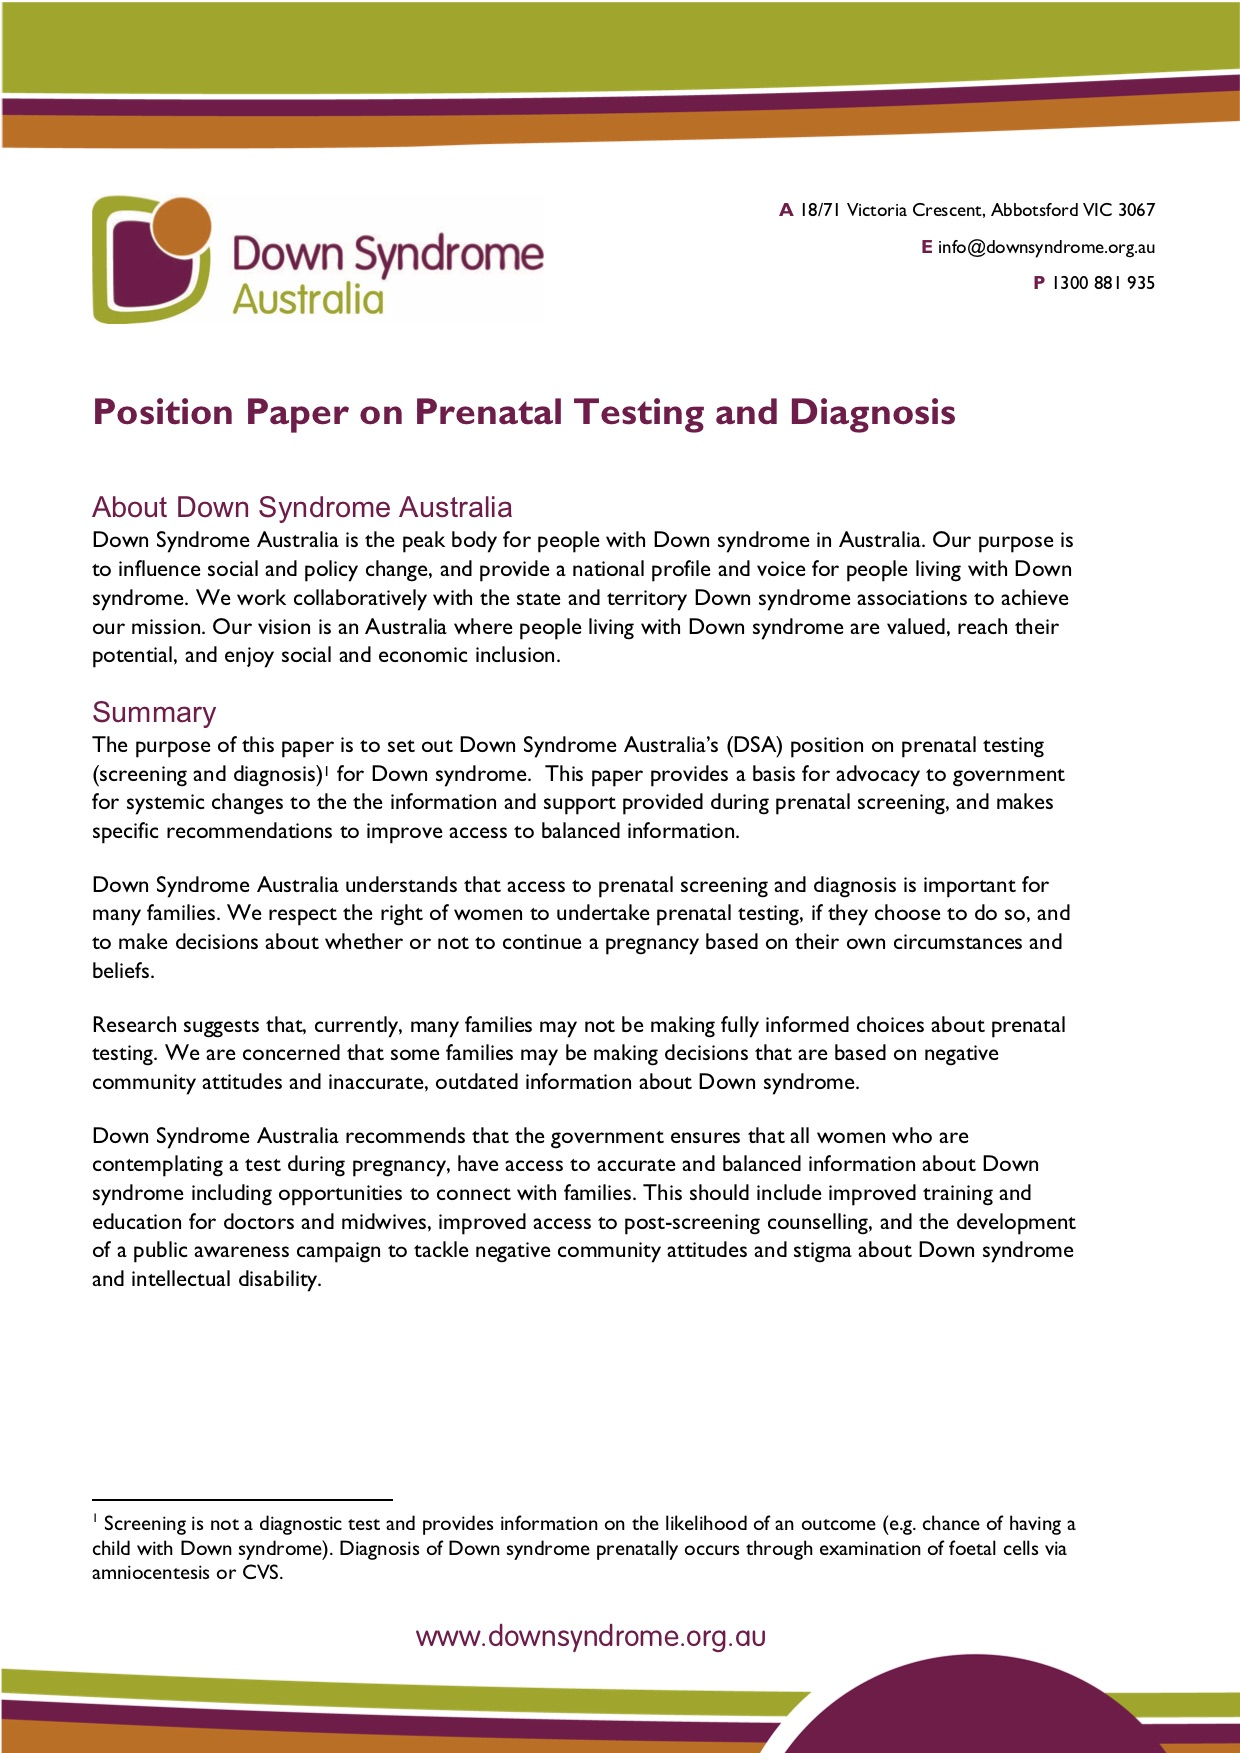 Position on Prenatal Testing (Easy Read) icon